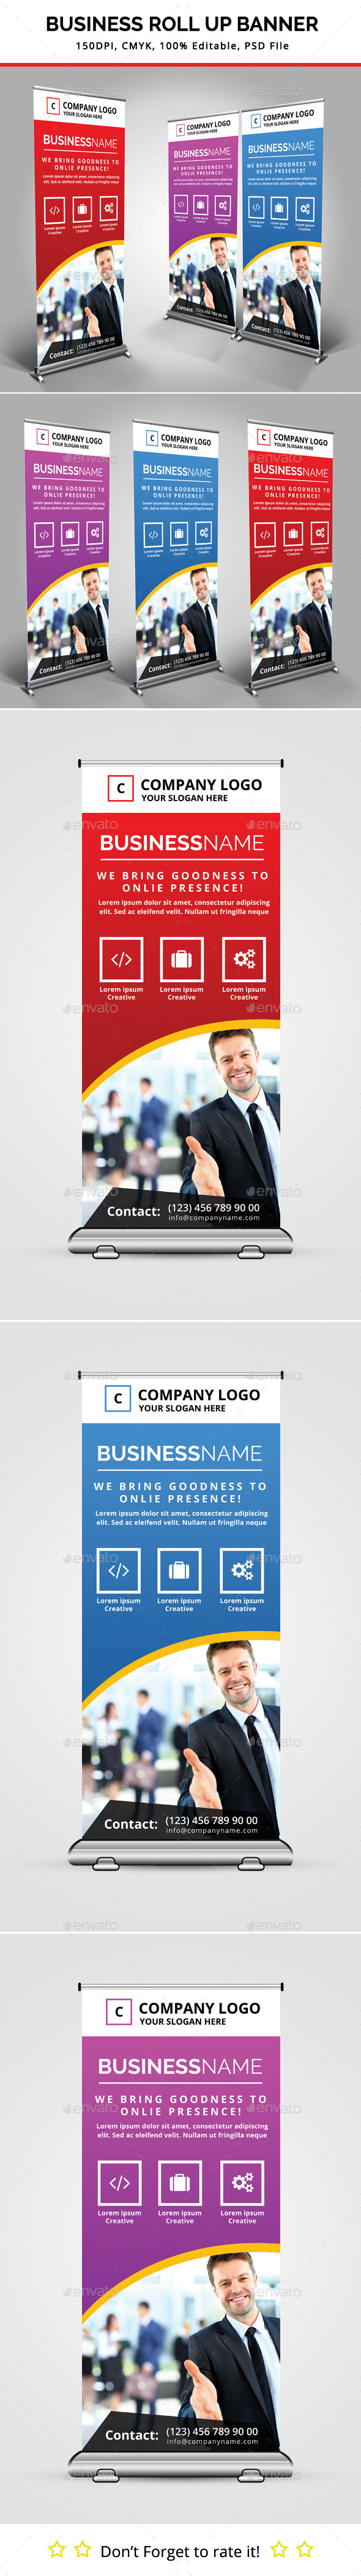 GraphicRiver Business Roll Up Banner 11330772